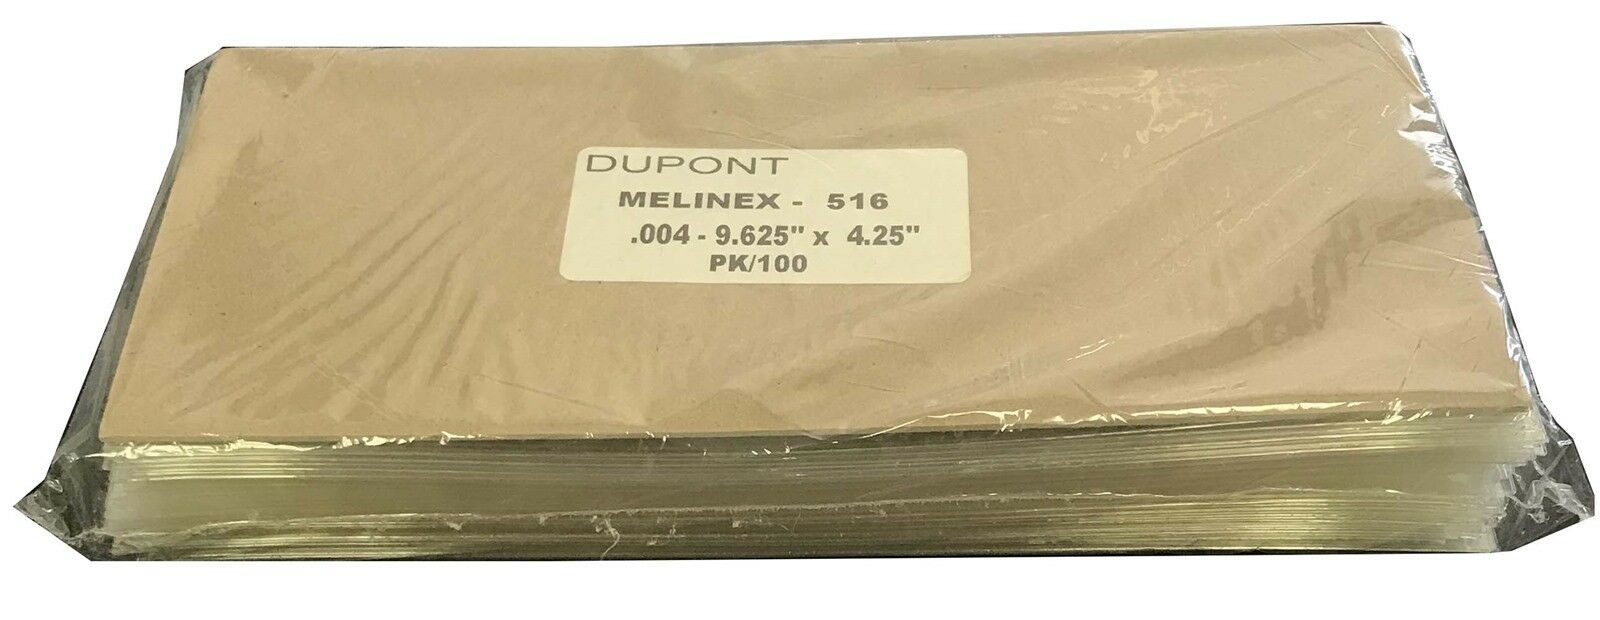 Details about Polyester Mylar Top Quality Currency Sleeves Holders Check  Size 9 625x4 25 100